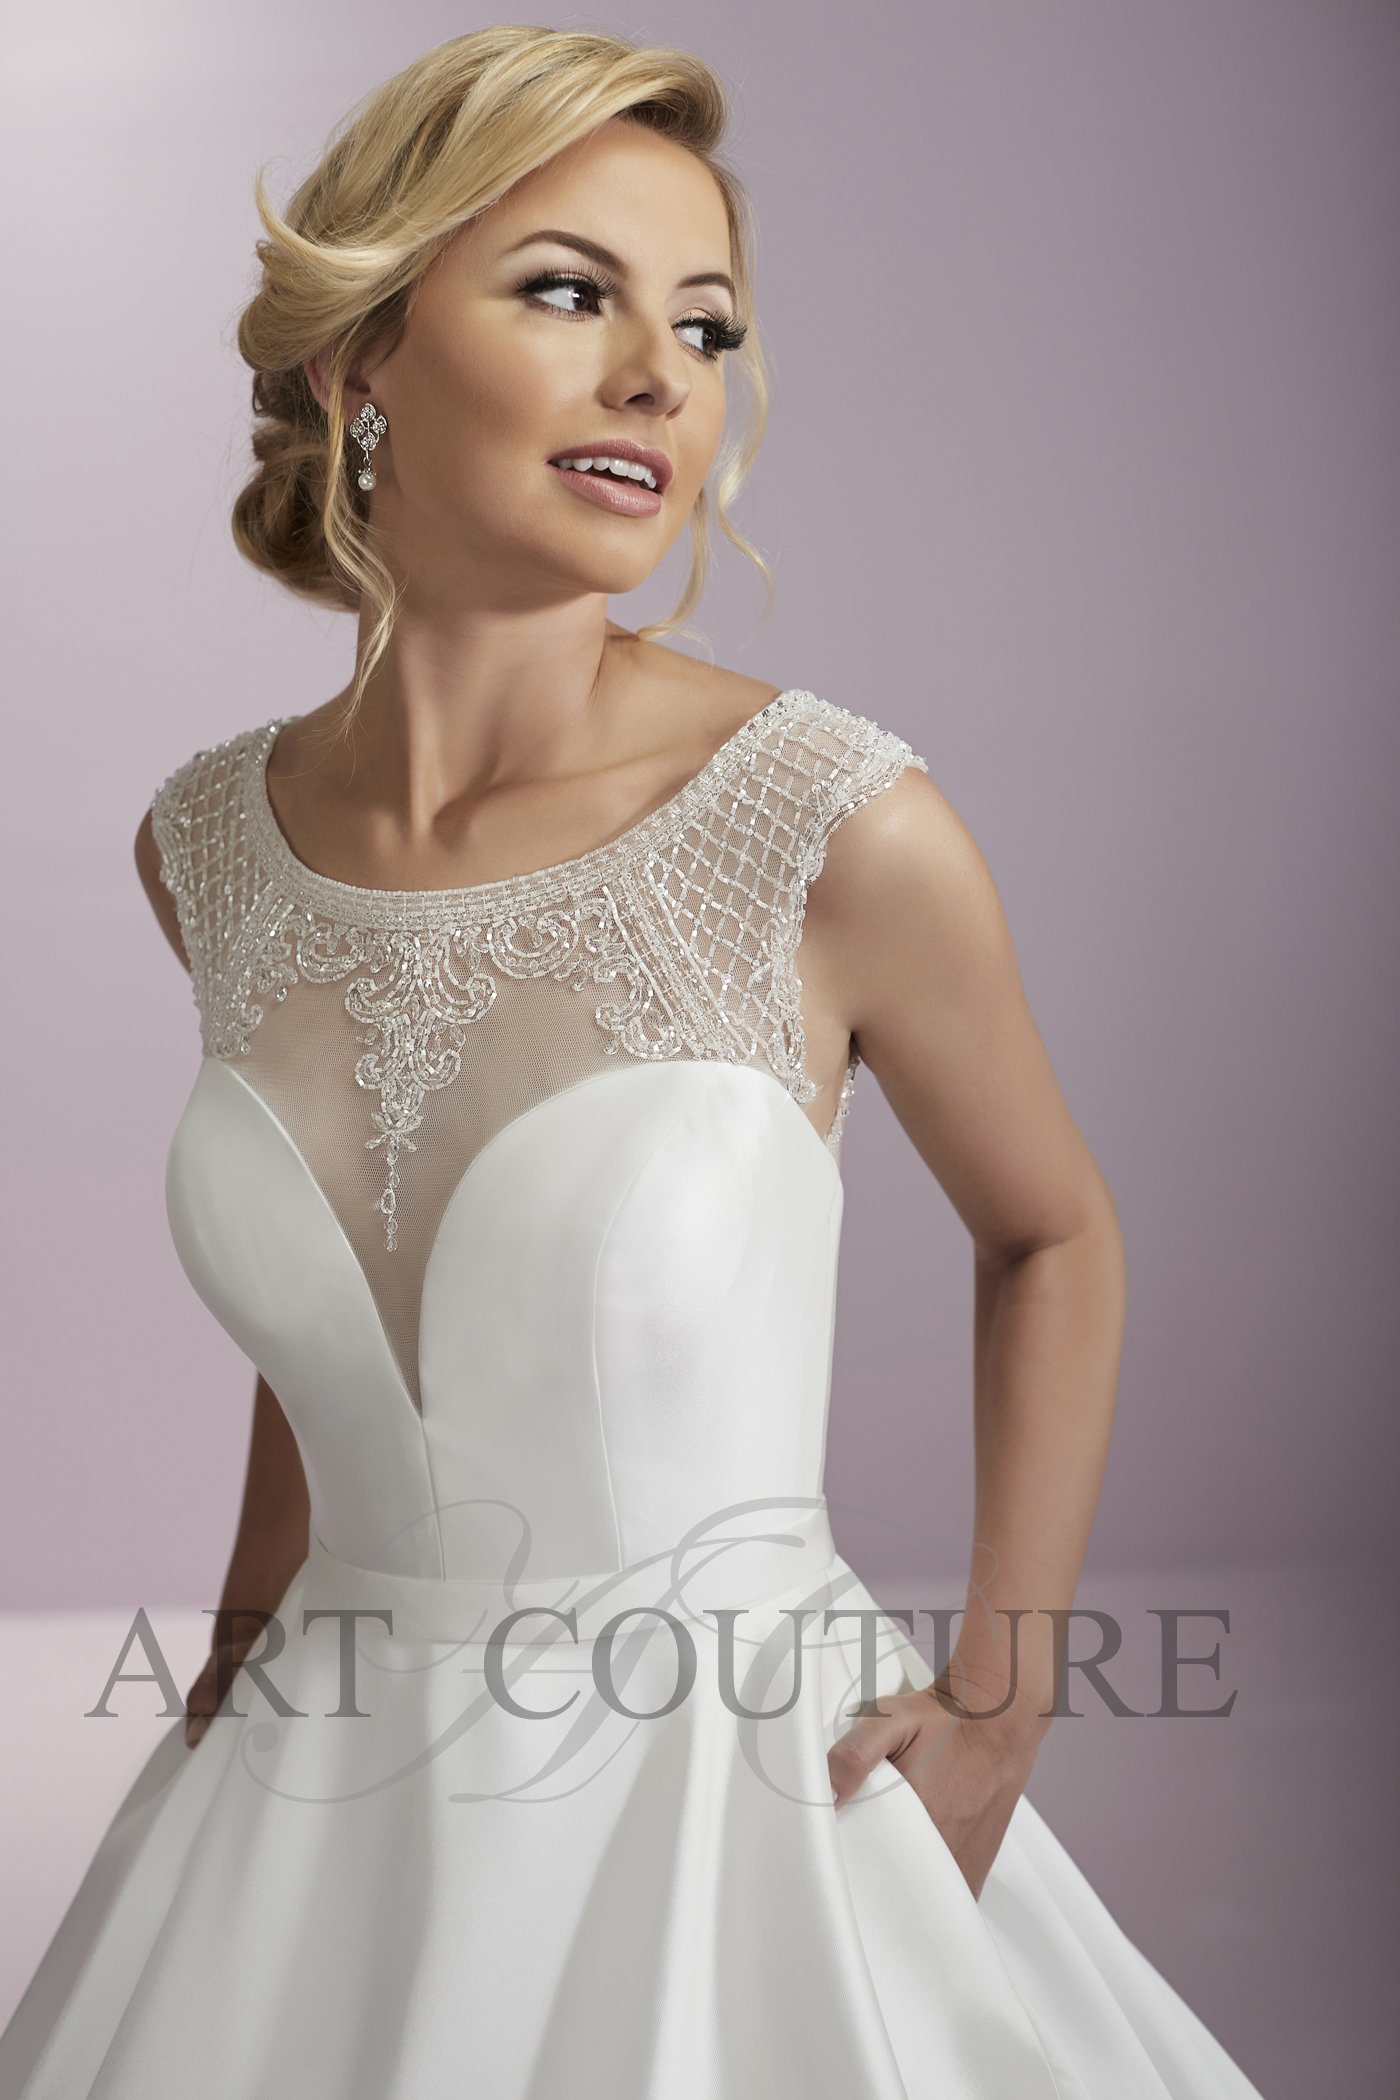 Bride Childwall - ART COUTURE (ETERNITY)